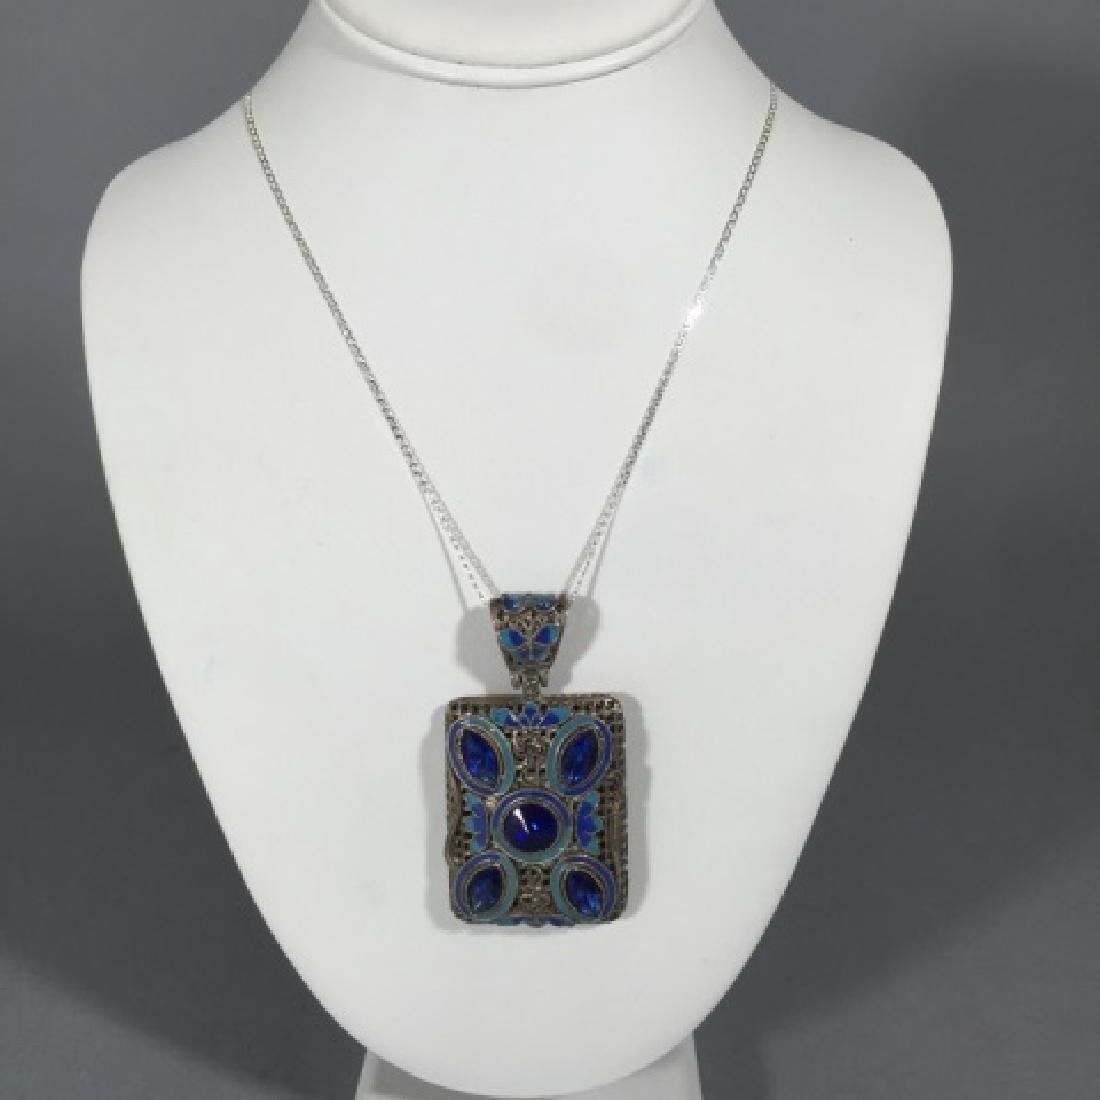 Sterling Necklace w Large Filigree Enamel Pendant - 4